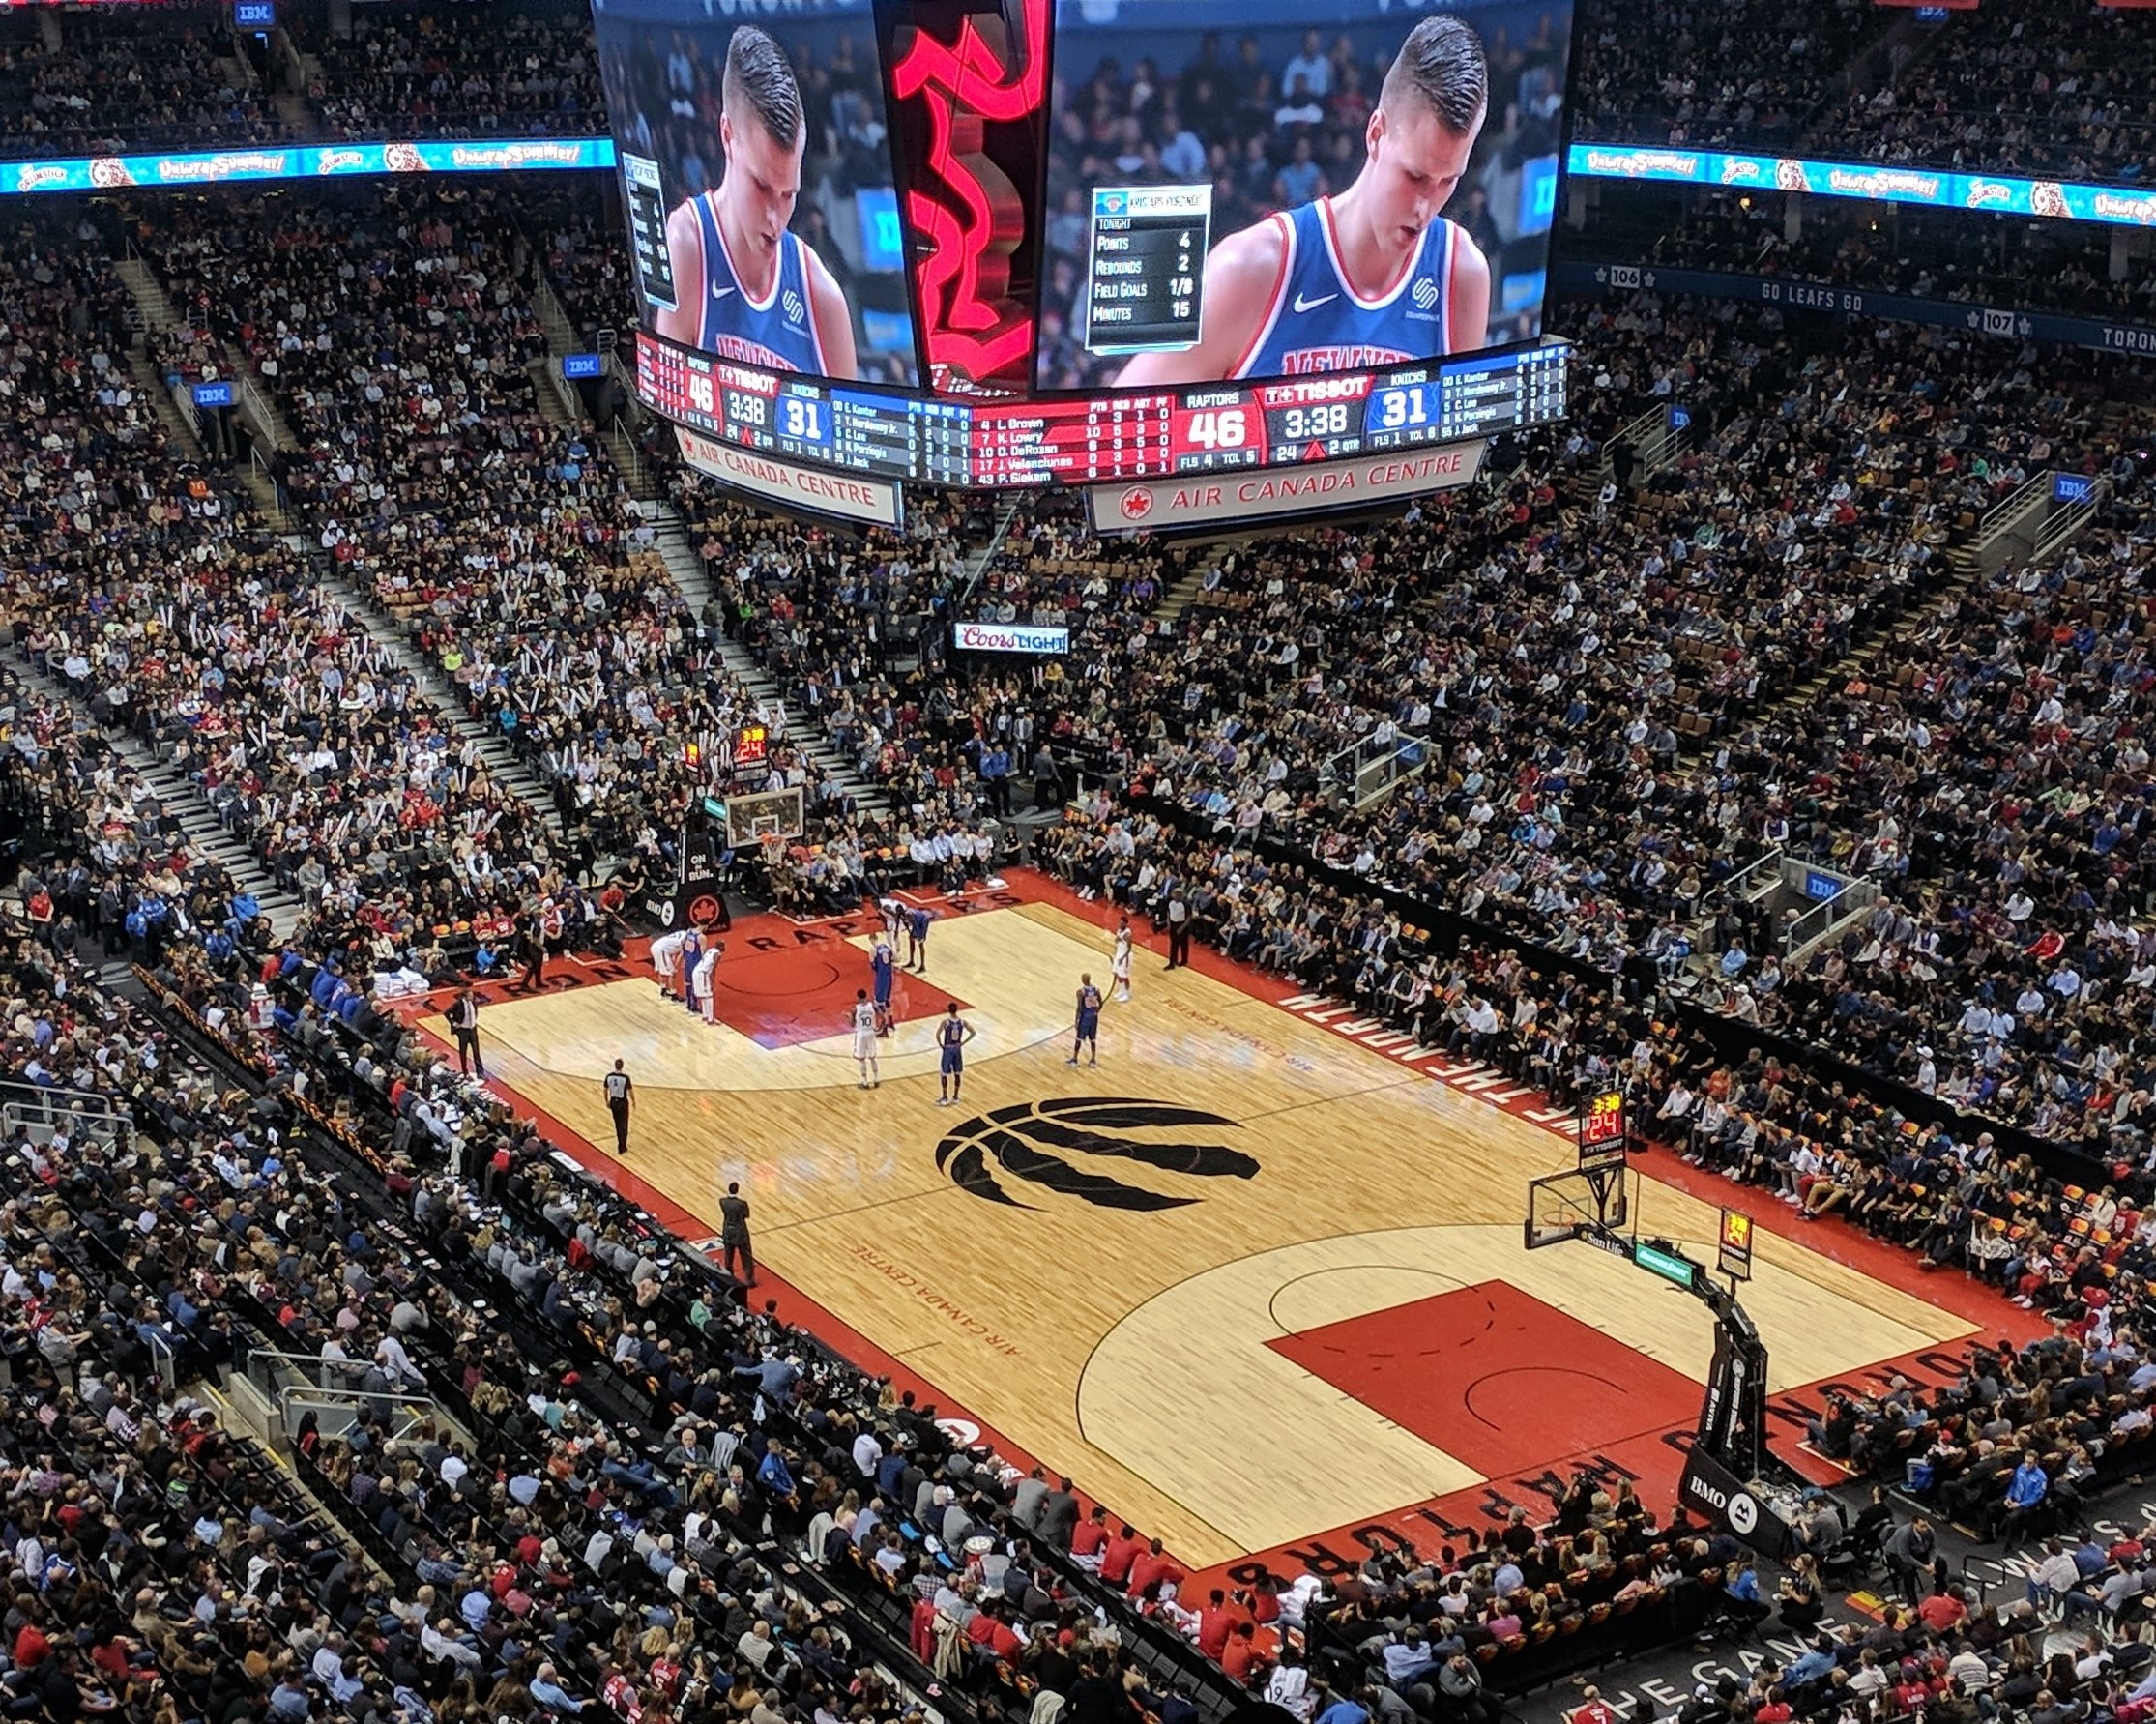 Photo of the Raptors trademark on the court of Scotiabank arena.